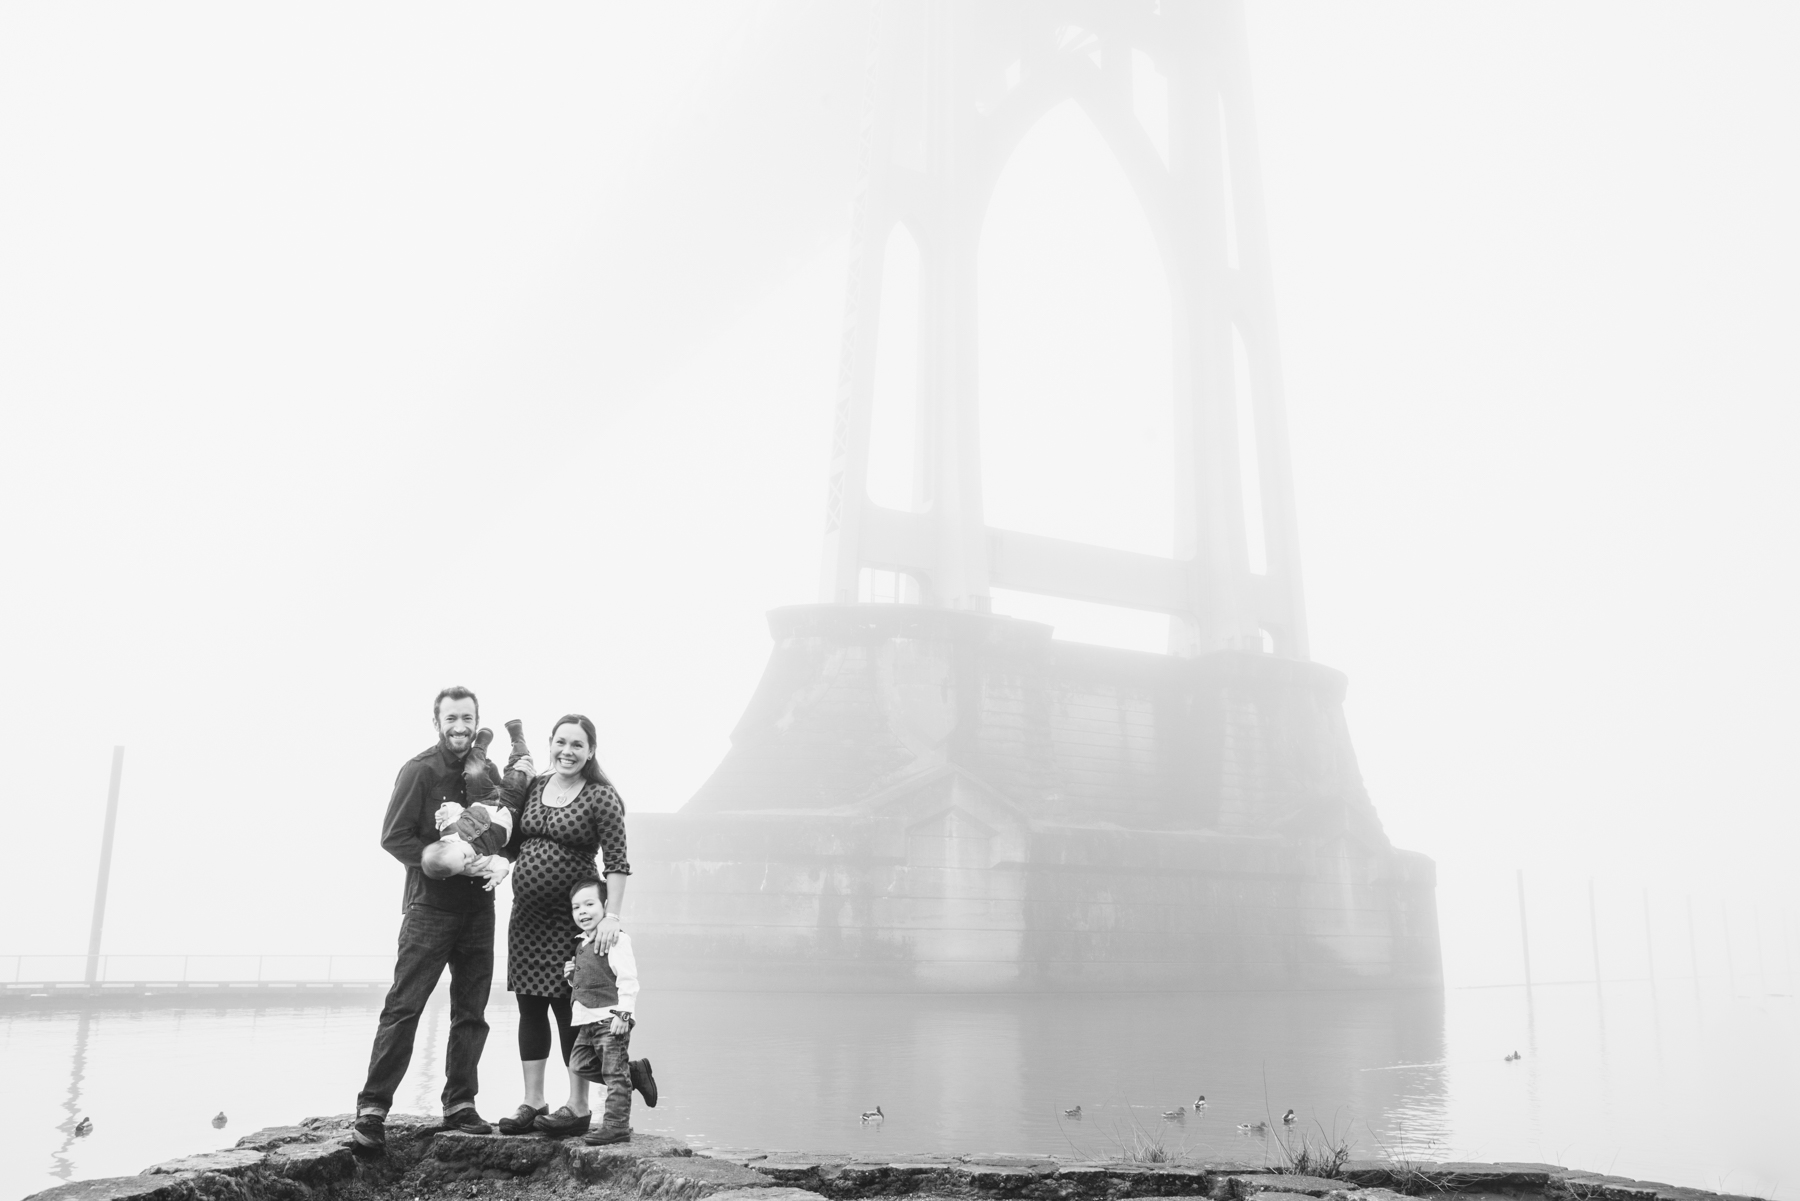 In late January Portland had a crazy week of really heavy fog. It was so beautiful seeing the city and the bridges disappear into the fog and turned into a great backdrop for this family portrait session in Cathedral Park.